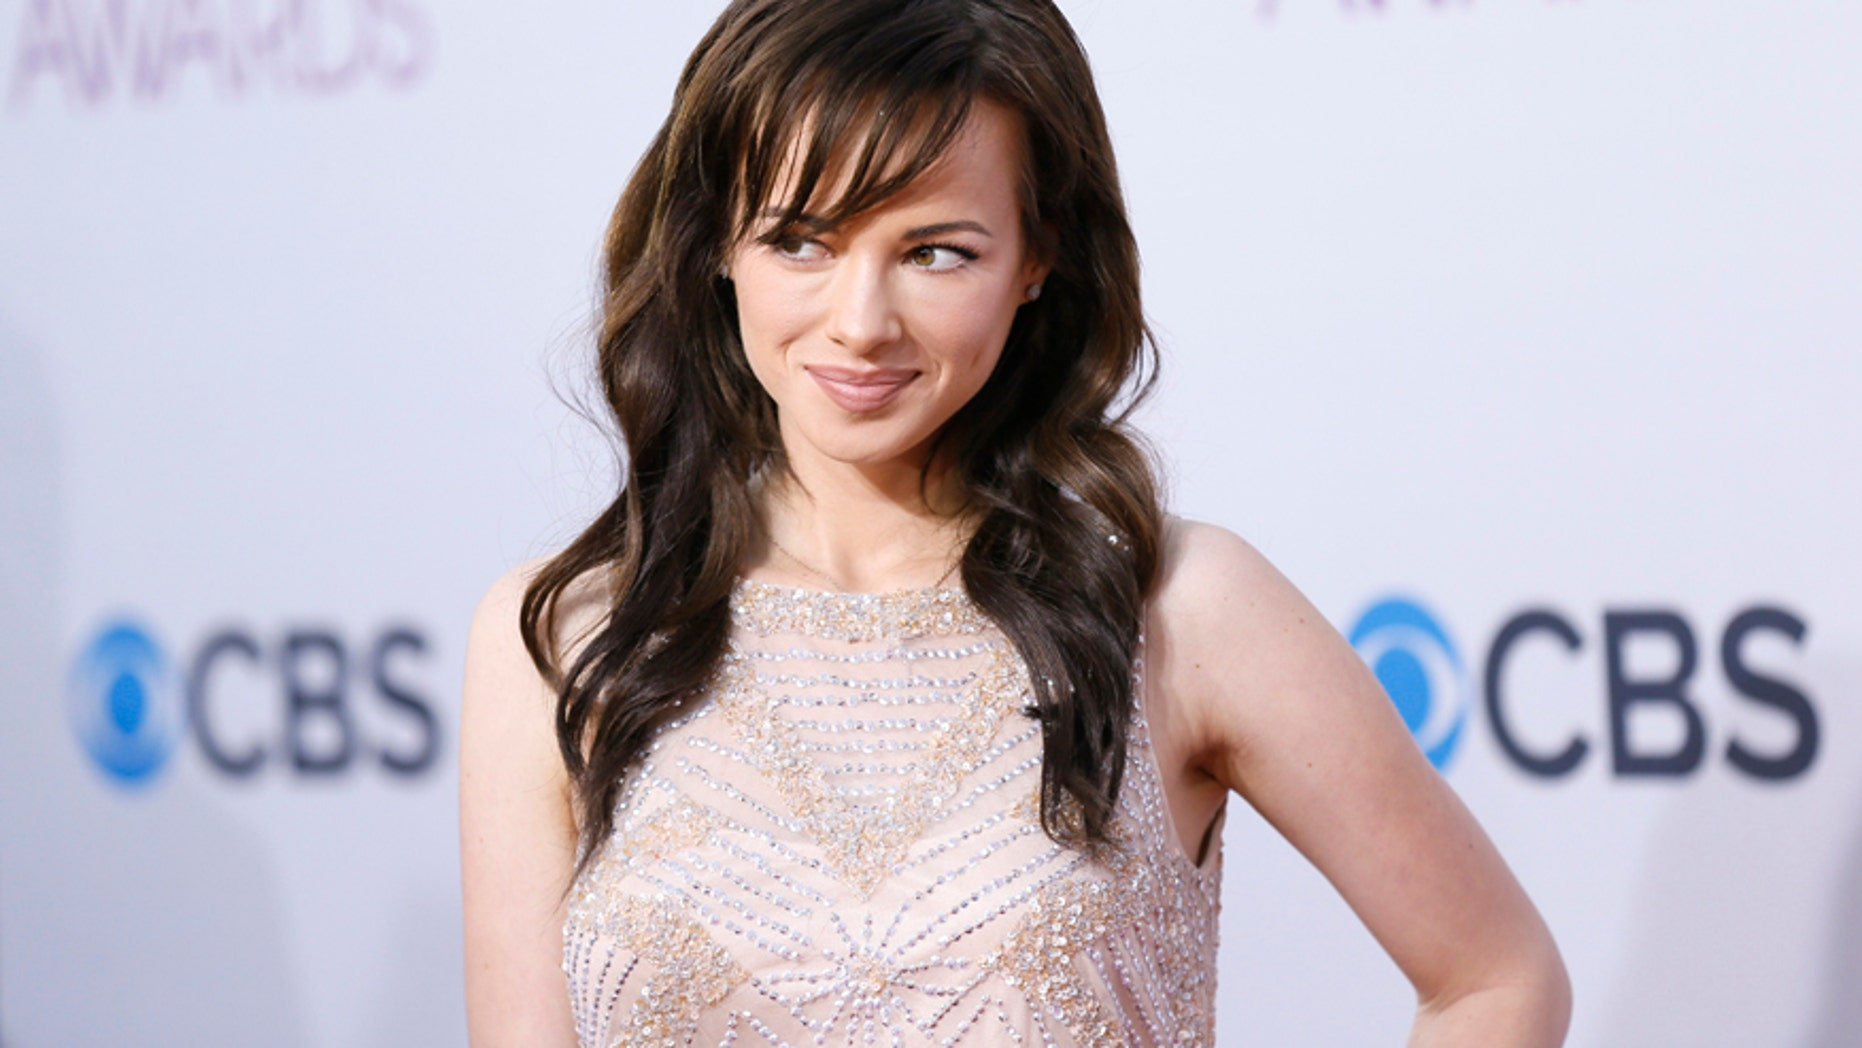 """Actress Ashley Rickards, of the television series """"Awkward,"""" arrives at the 2013 People's Choice Awards in Los Angeles, January 9, 2013."""